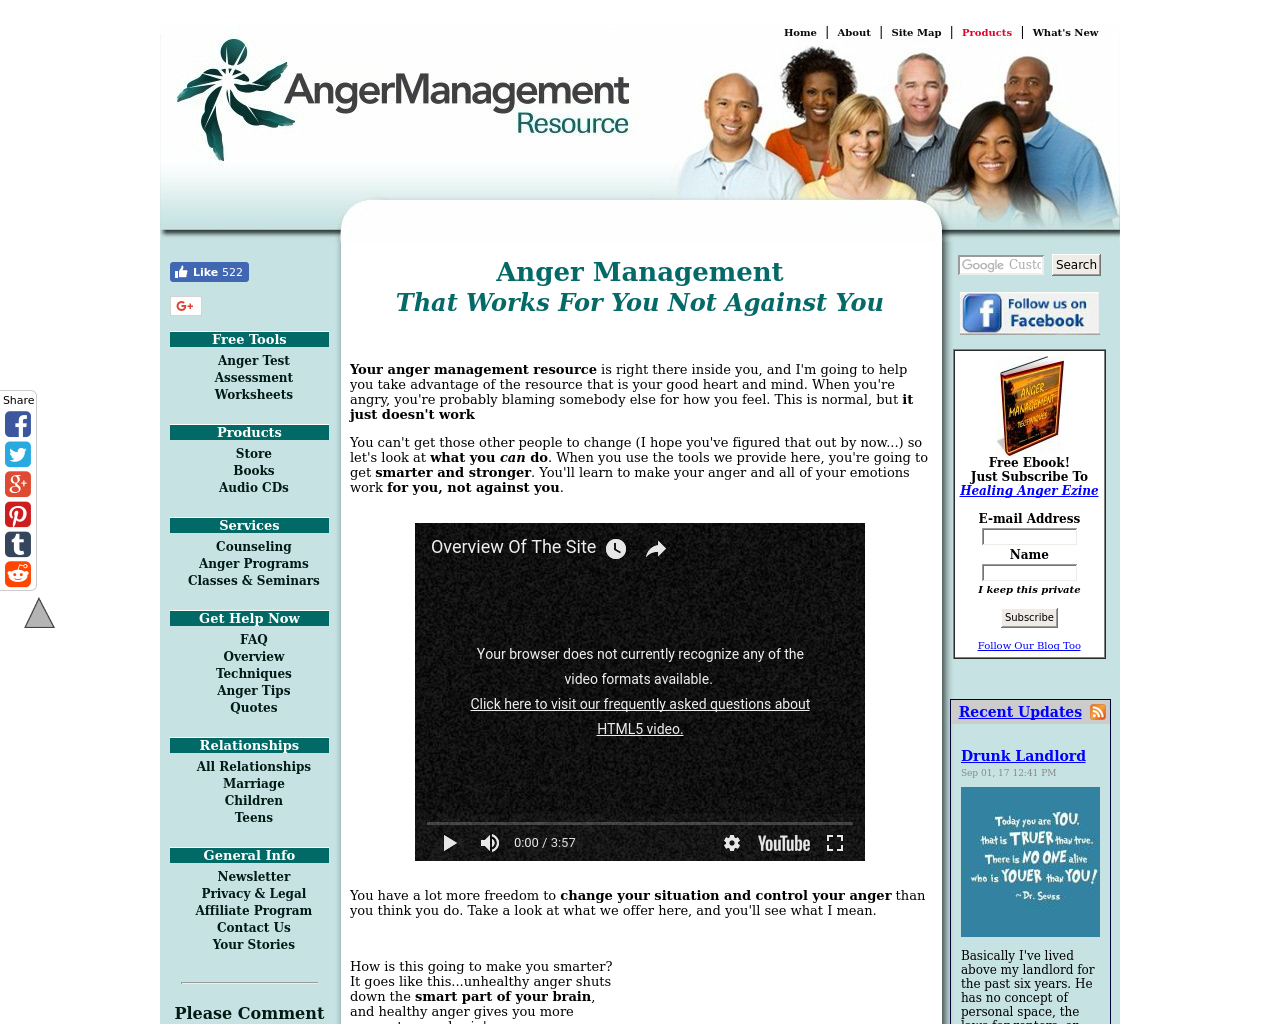 Anger-Management-Resource-Advertising-Reviews-Pricing